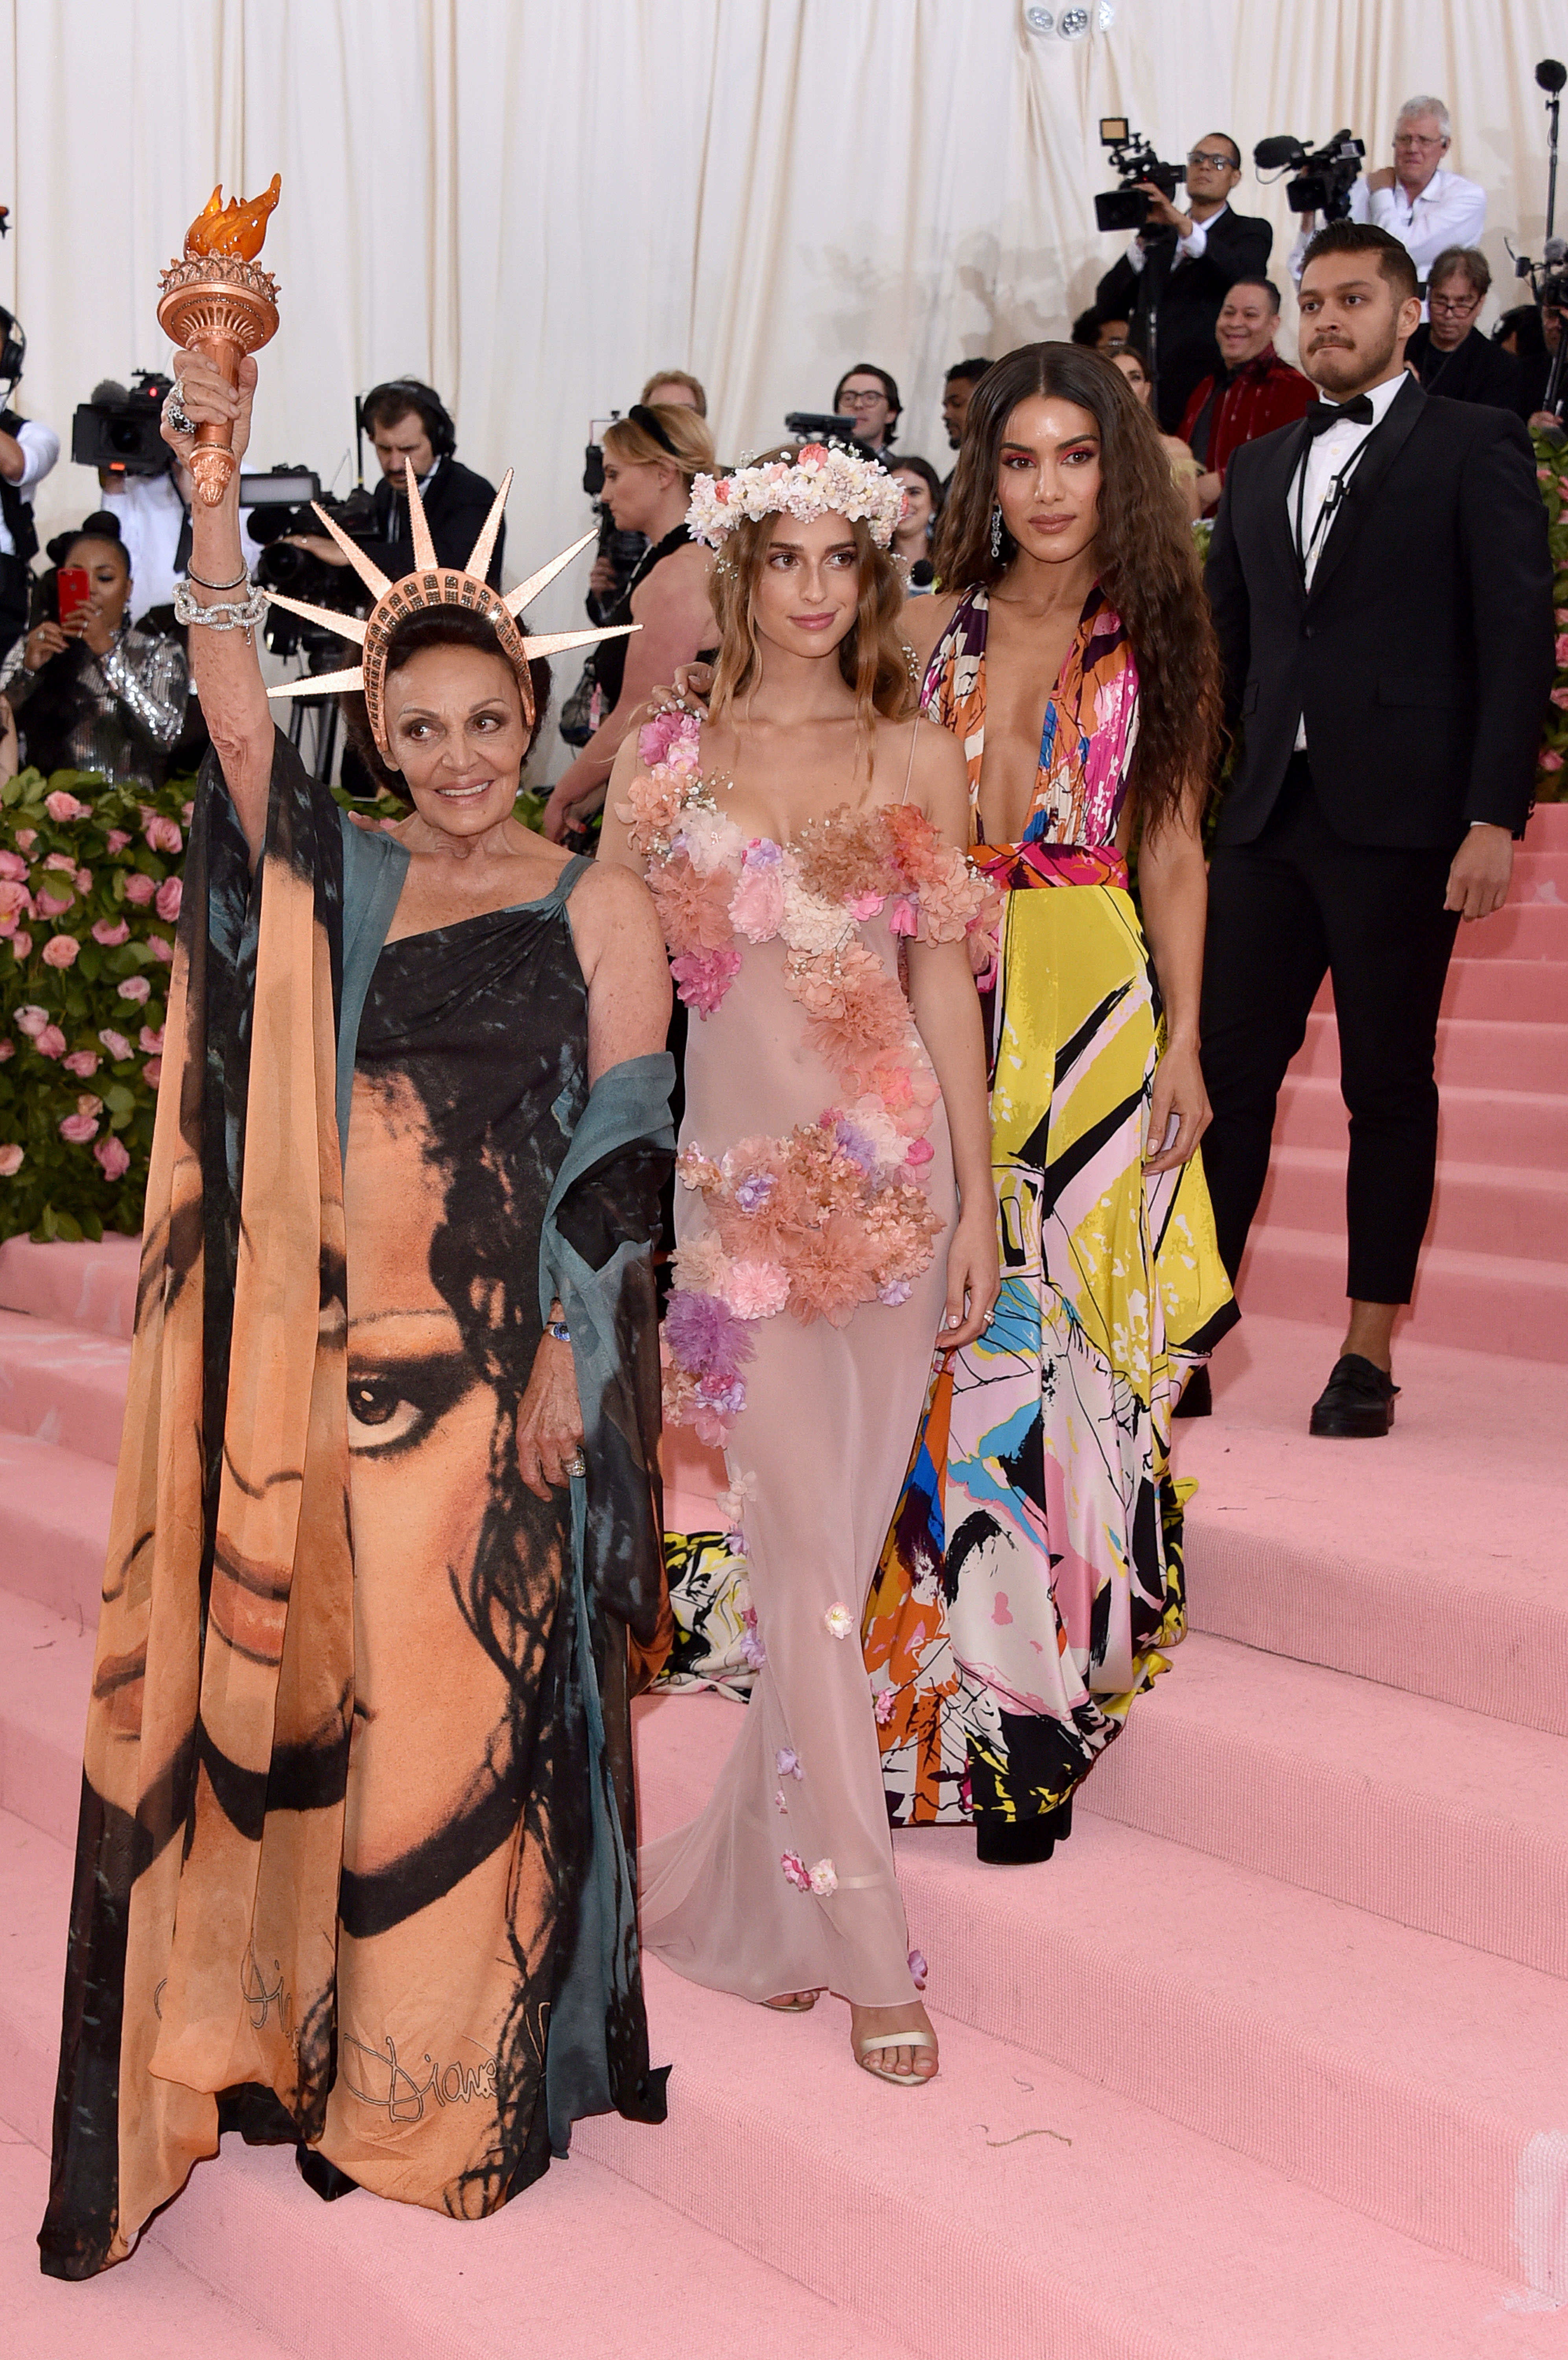 NEW YORK, NEW YORK - MAY 06:  Diane von Furstenberg, Talita Von Furstenberg and Camila Coelho attend The 2019 Met Gala Celebrating Camp: Notes on Fashion at Metropolitan Museum of Art on May 06, 2019 in New York City. (Photo by John Shearer/Getty Images for THR)